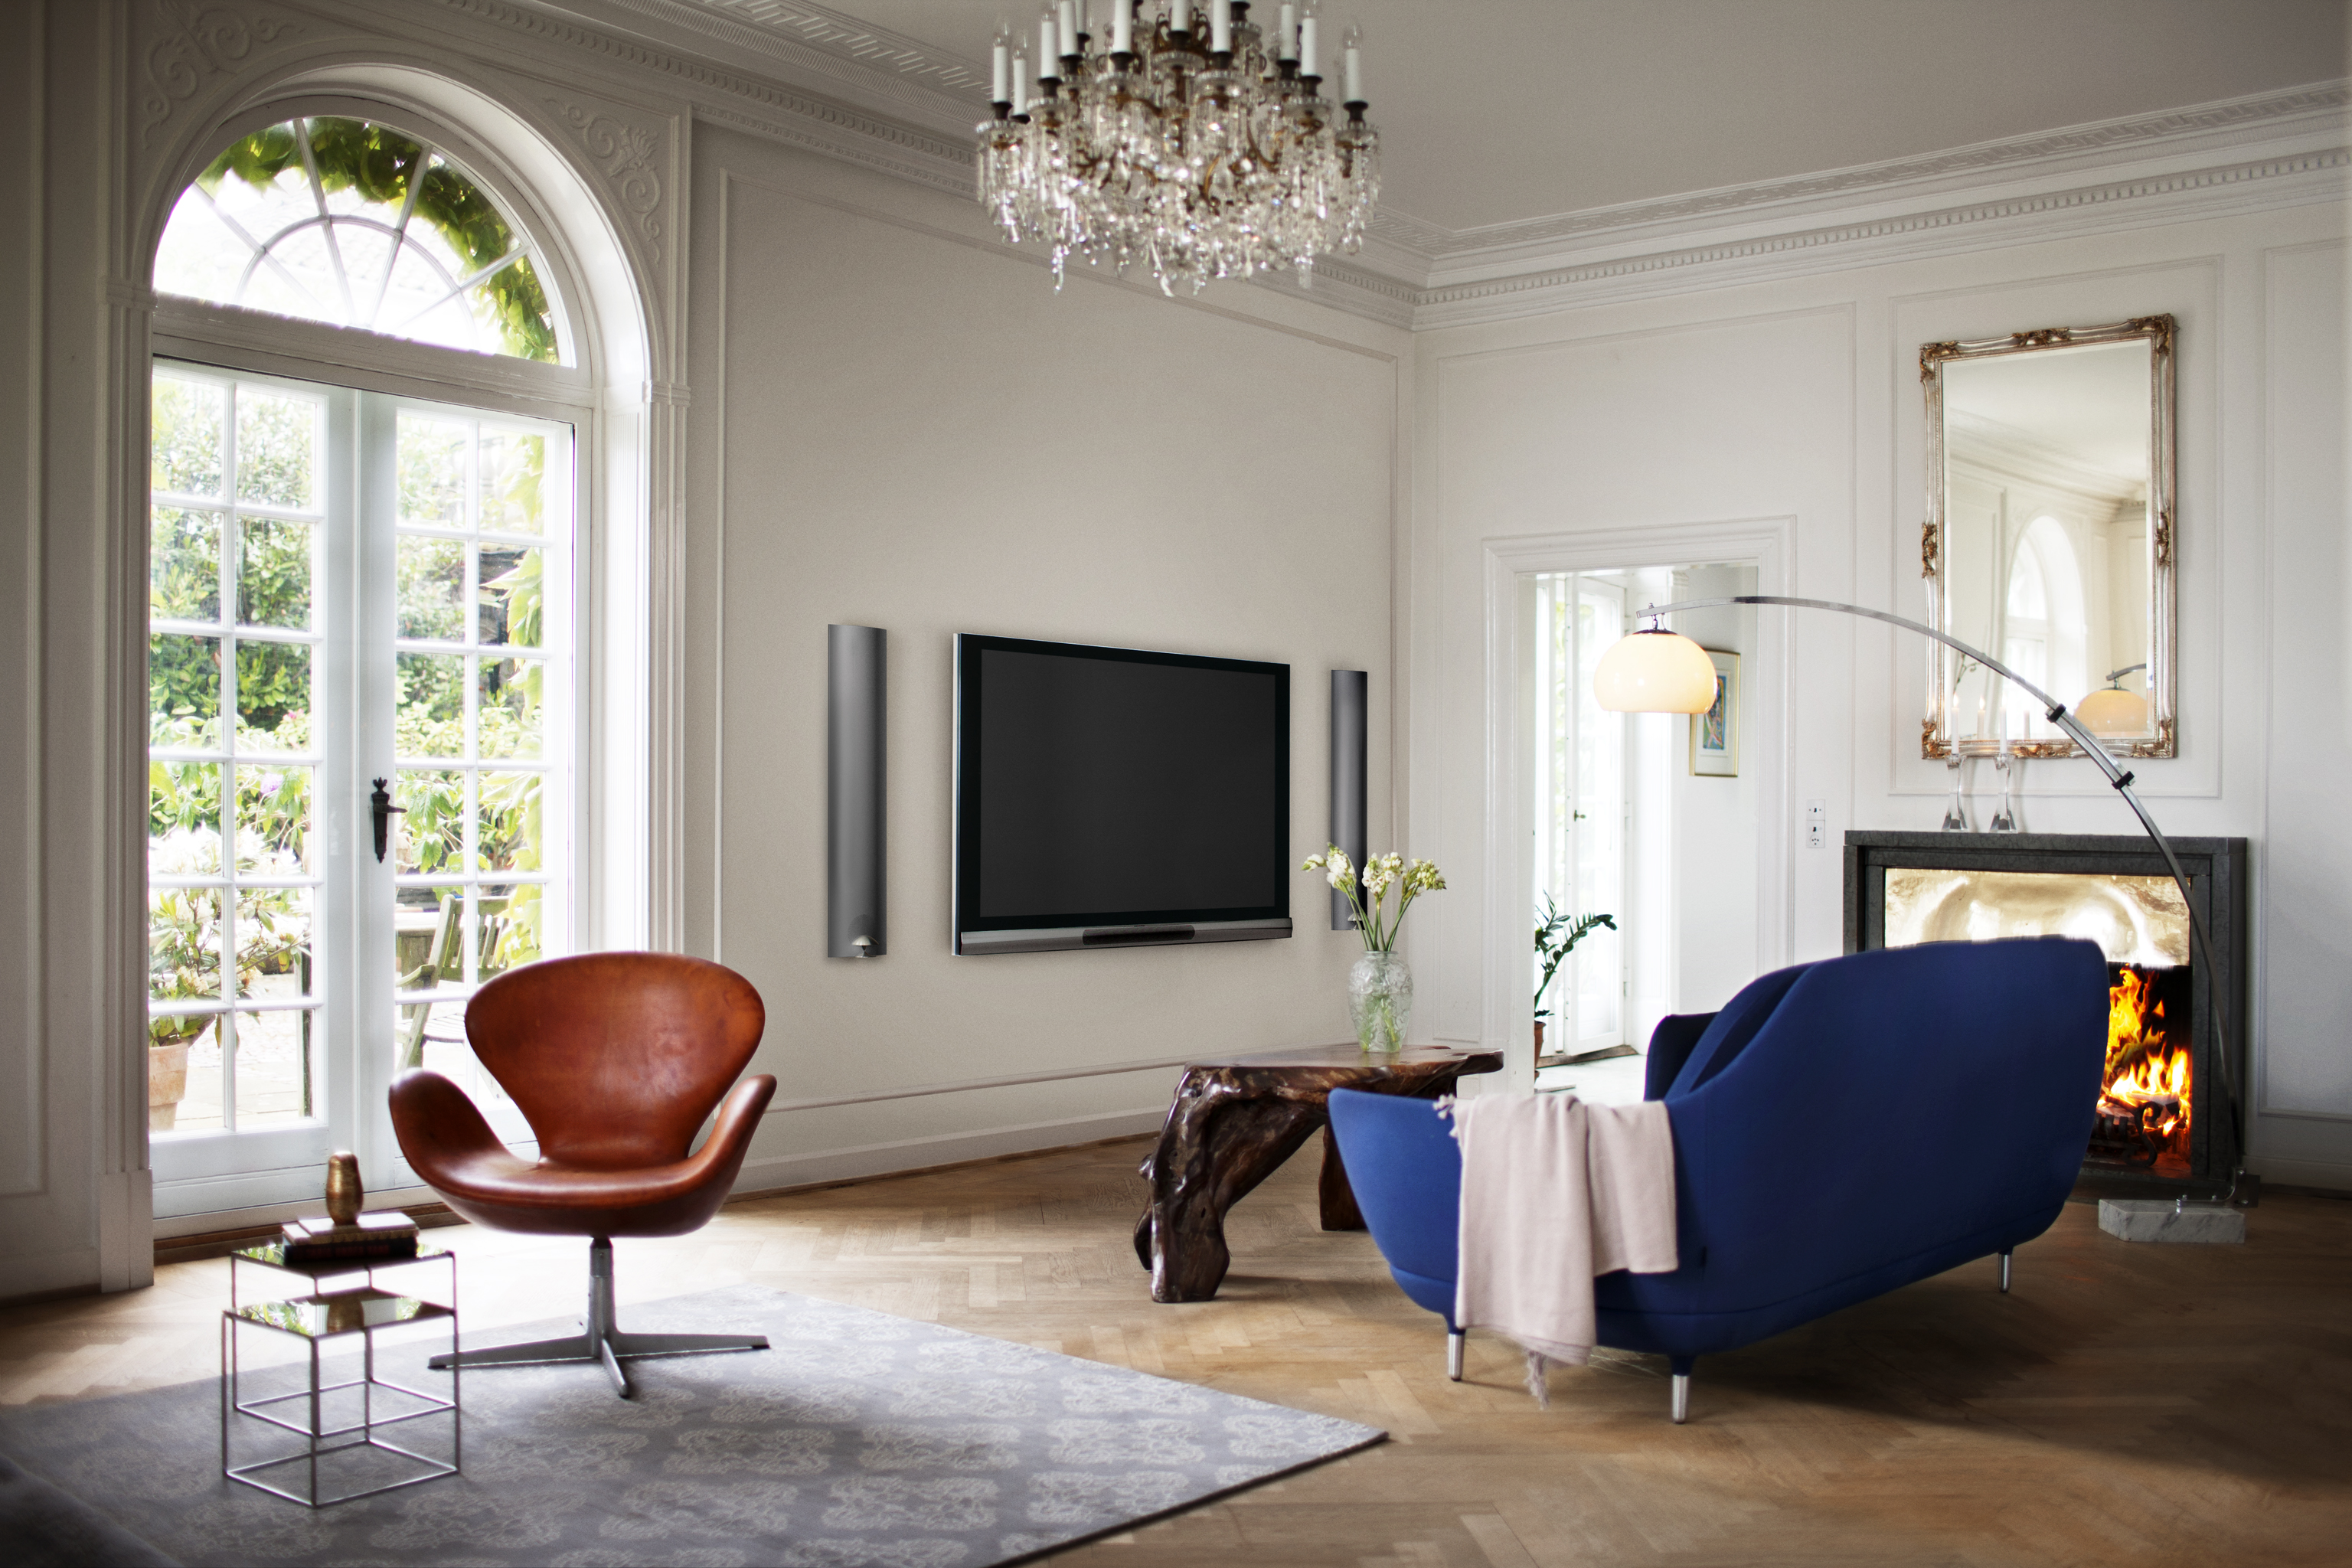 bang olufsen launches beosystem 4 video engine for. Black Bedroom Furniture Sets. Home Design Ideas